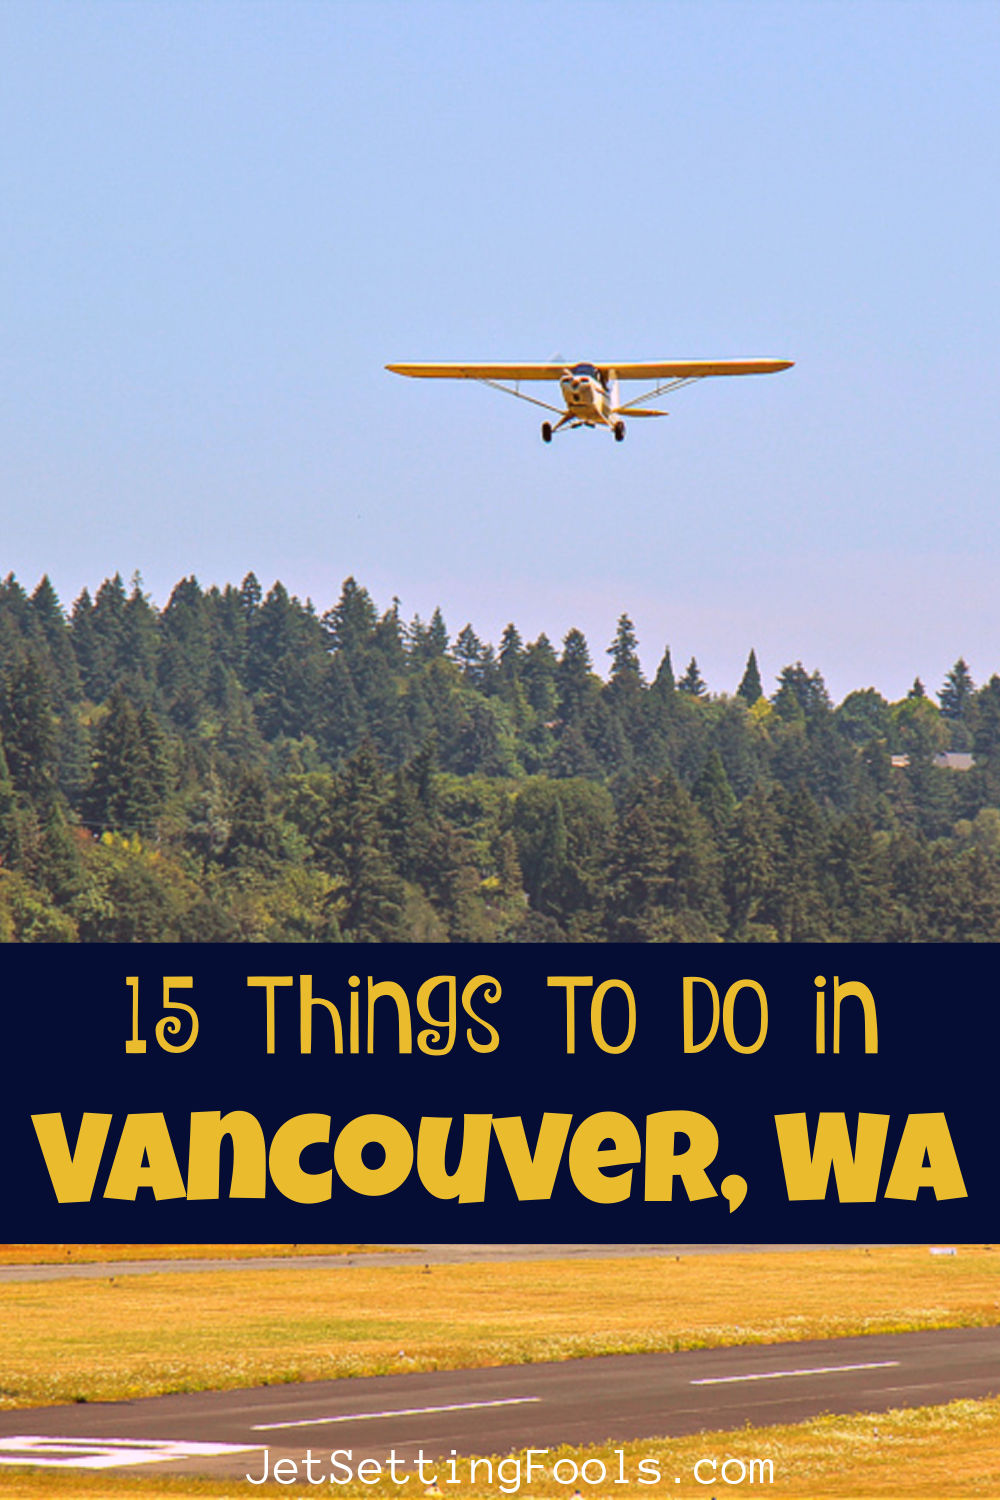 15 Things To Do in Vancouver, WA by JetSettingFools.com